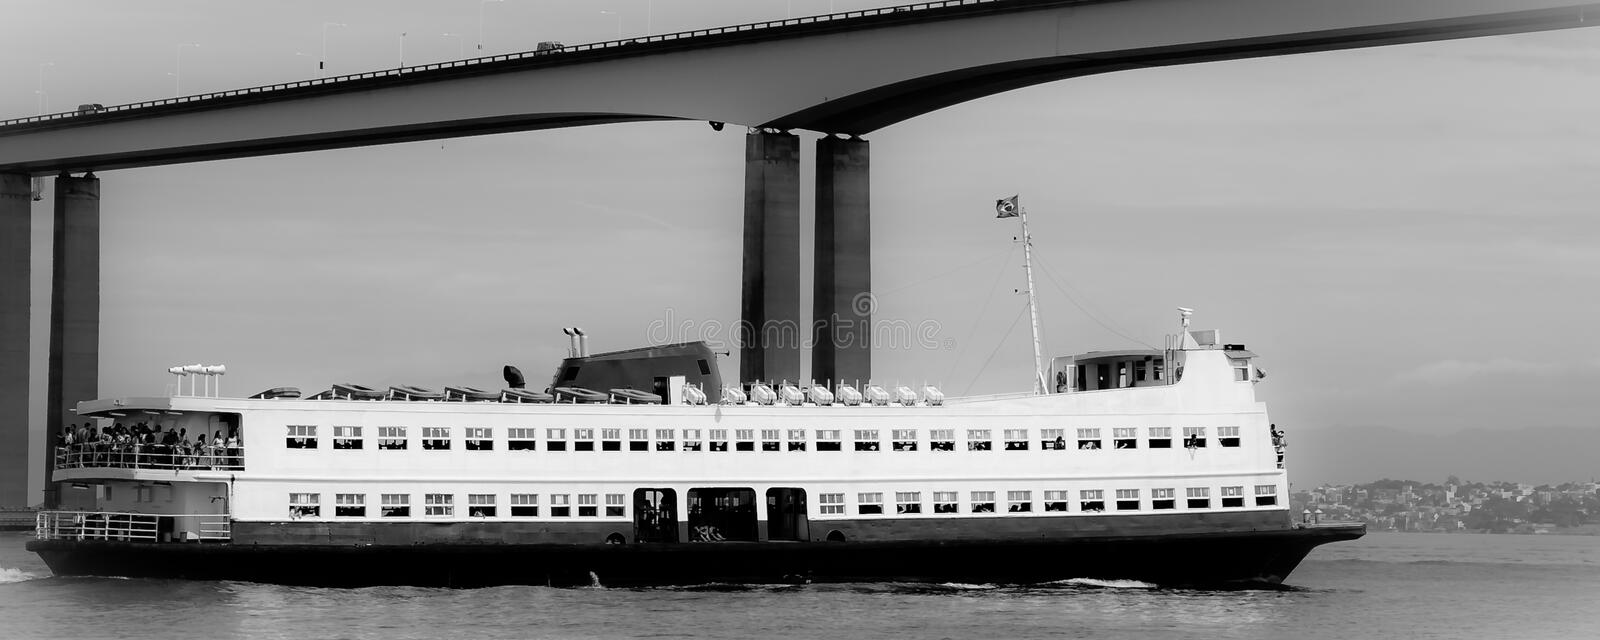 Barca Rio-Niteroi Ferry Boat On Baia De Guanabara Stock Photography